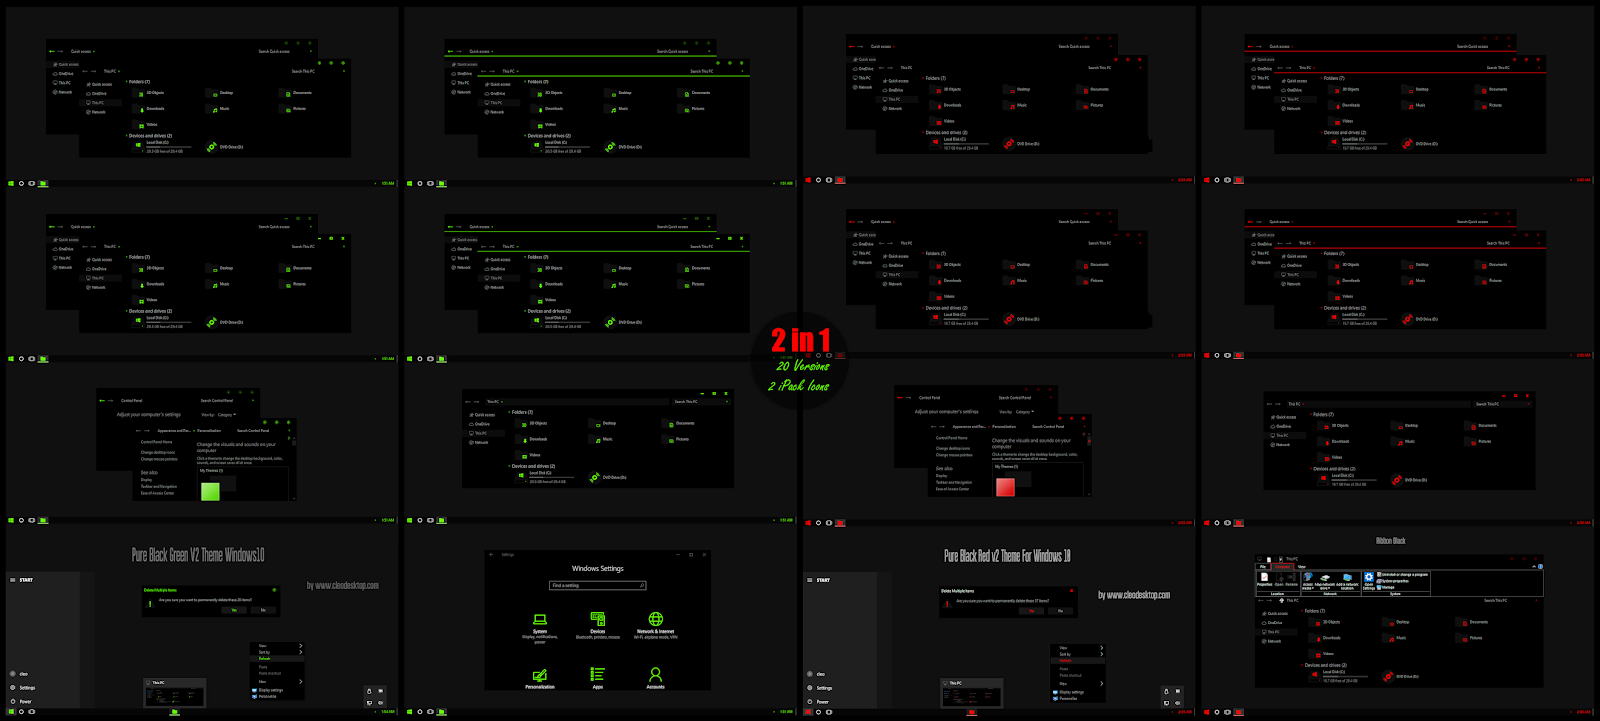 Pure Black Green and Red V2 Combo Pack Theme For Windows10